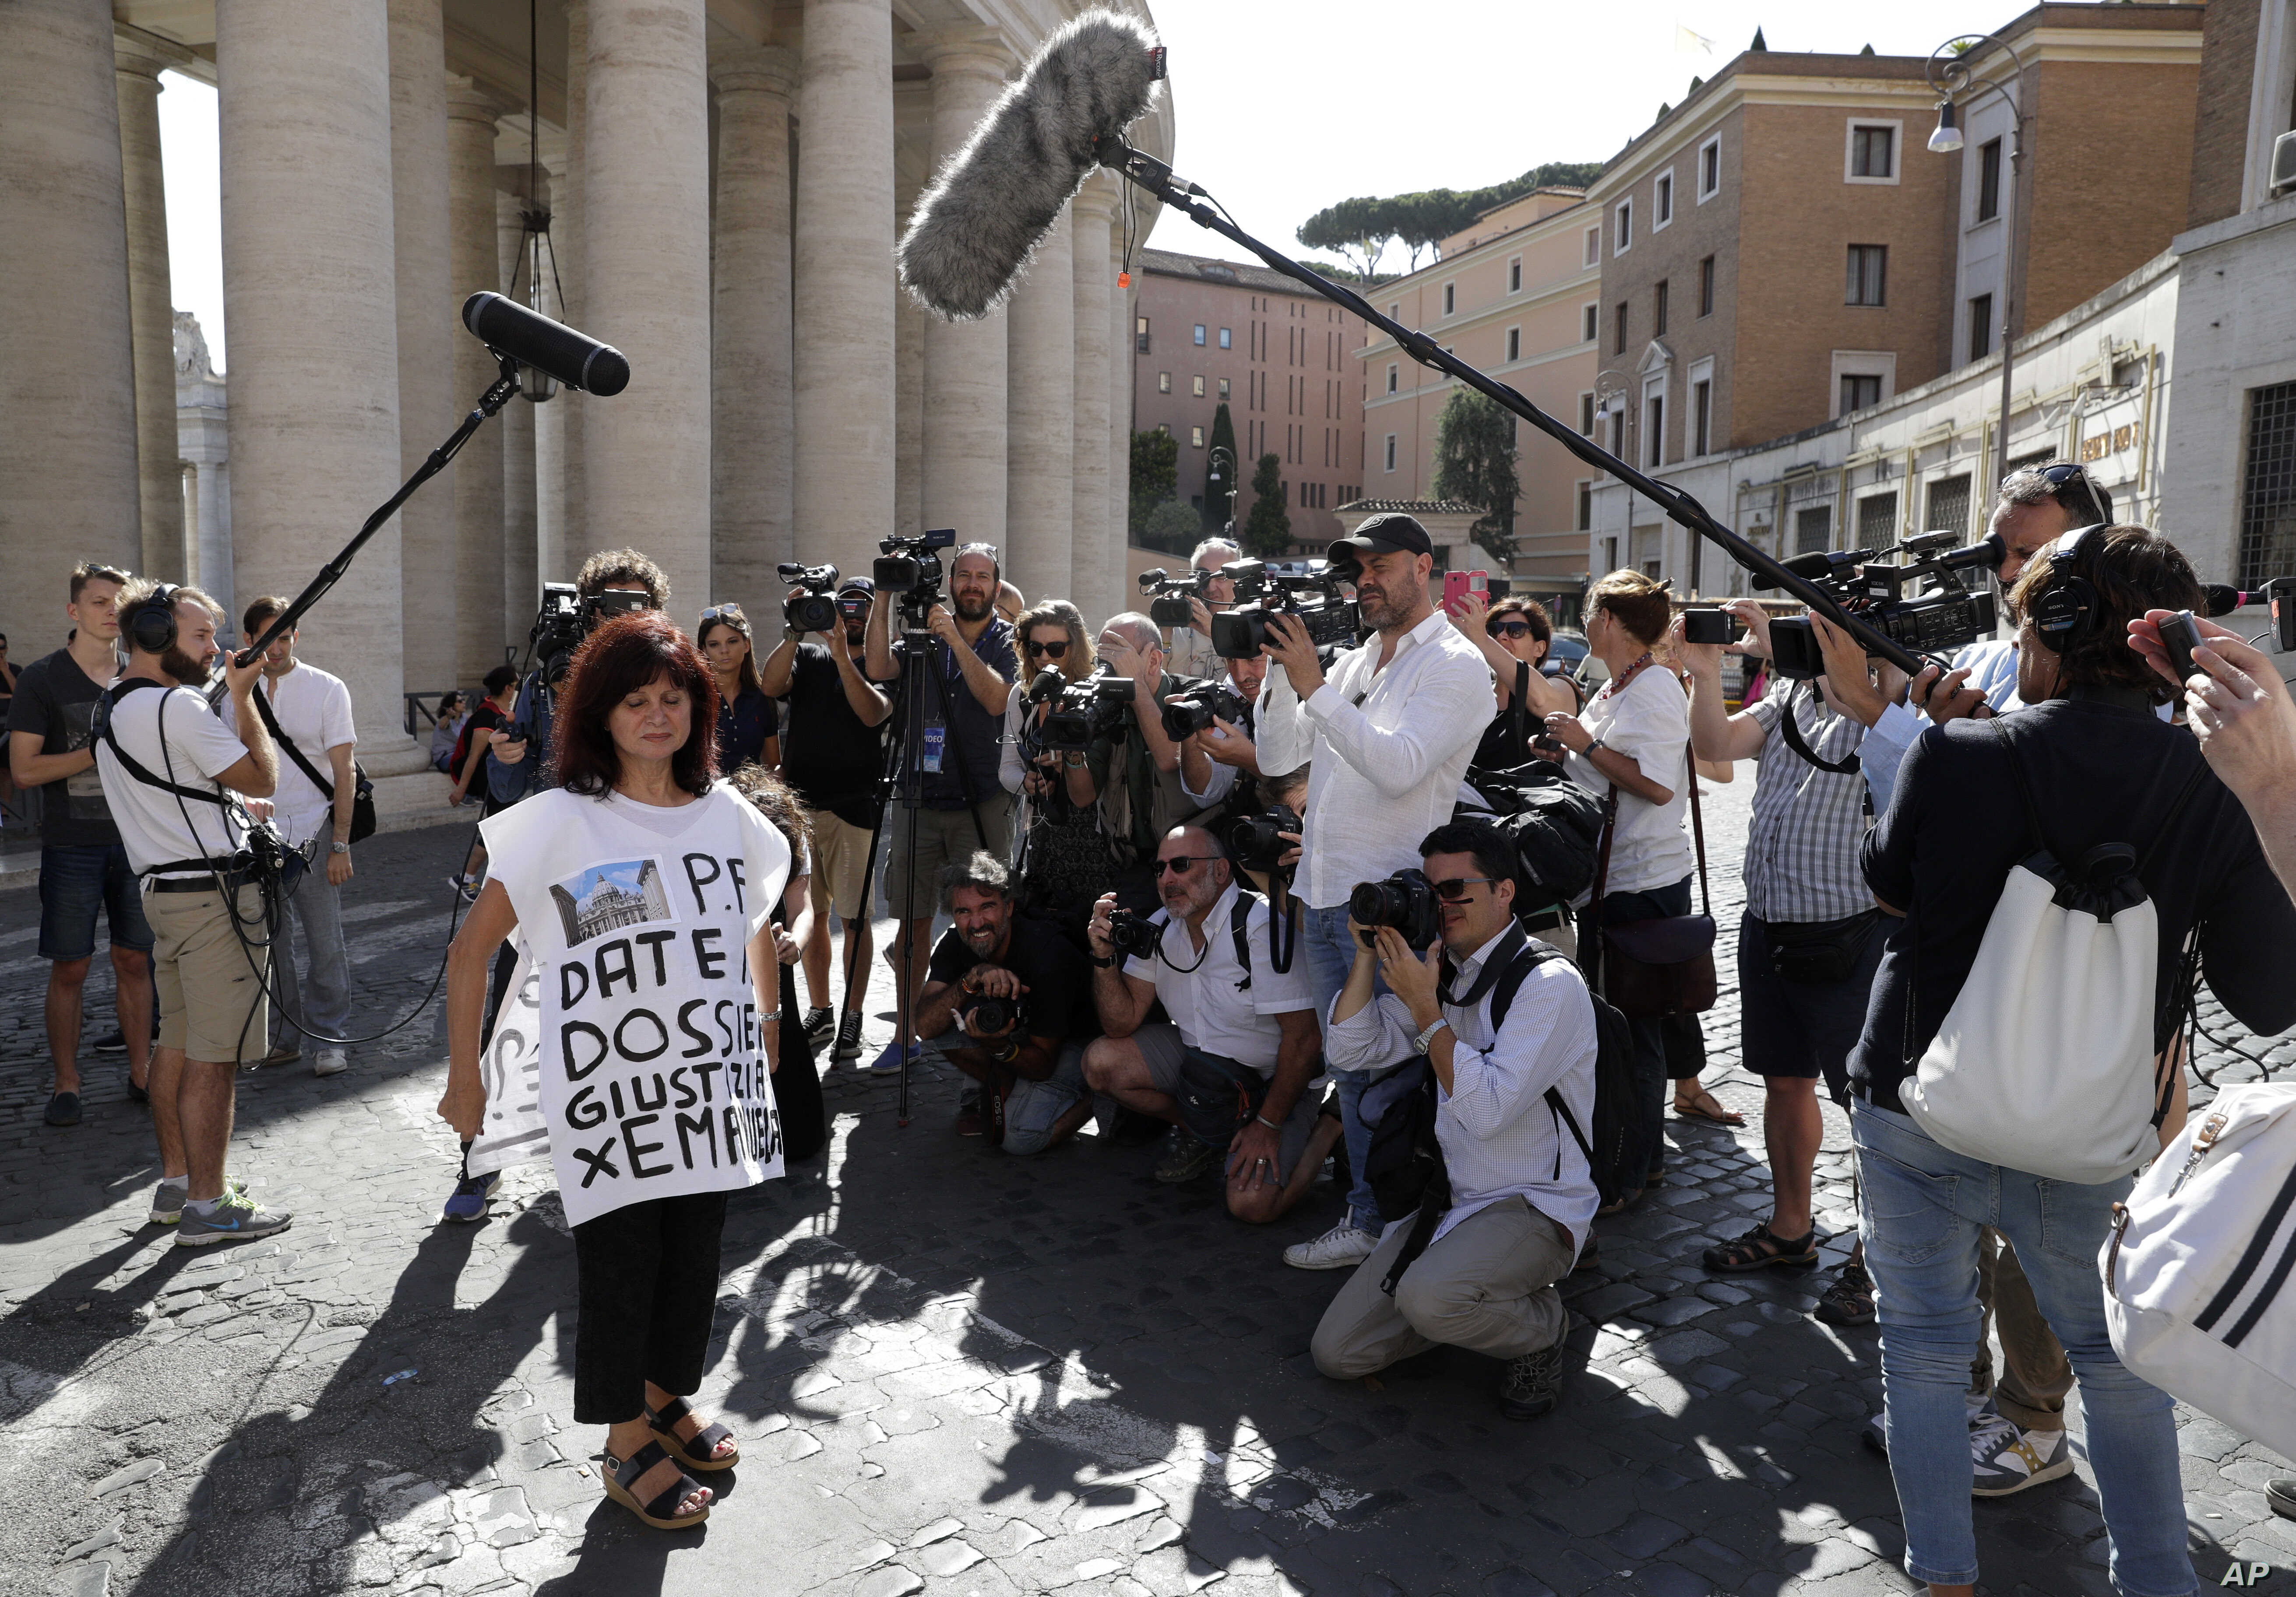 A demonstrator wears a shirt with writing in Italian reading